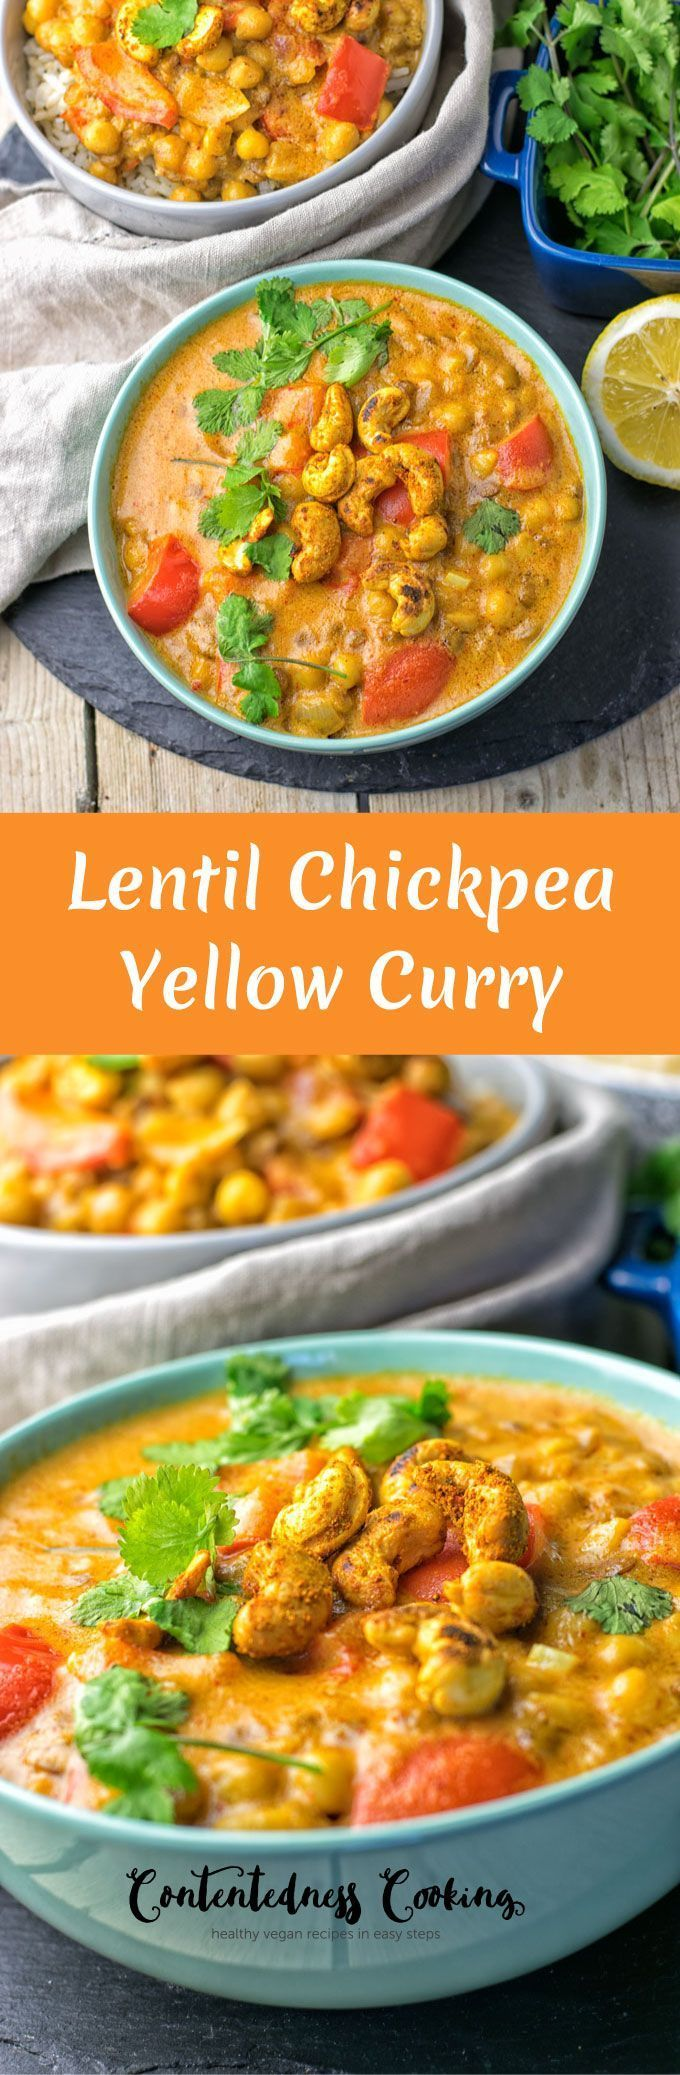 This #Lentil #Chickpea Yellow #Curry is #vegan and #glutenfree and you can make it with just 6 ingredients in 2 easy steps. Get ready for the most incredible, delicious plant-based meal. #lunch #dinner